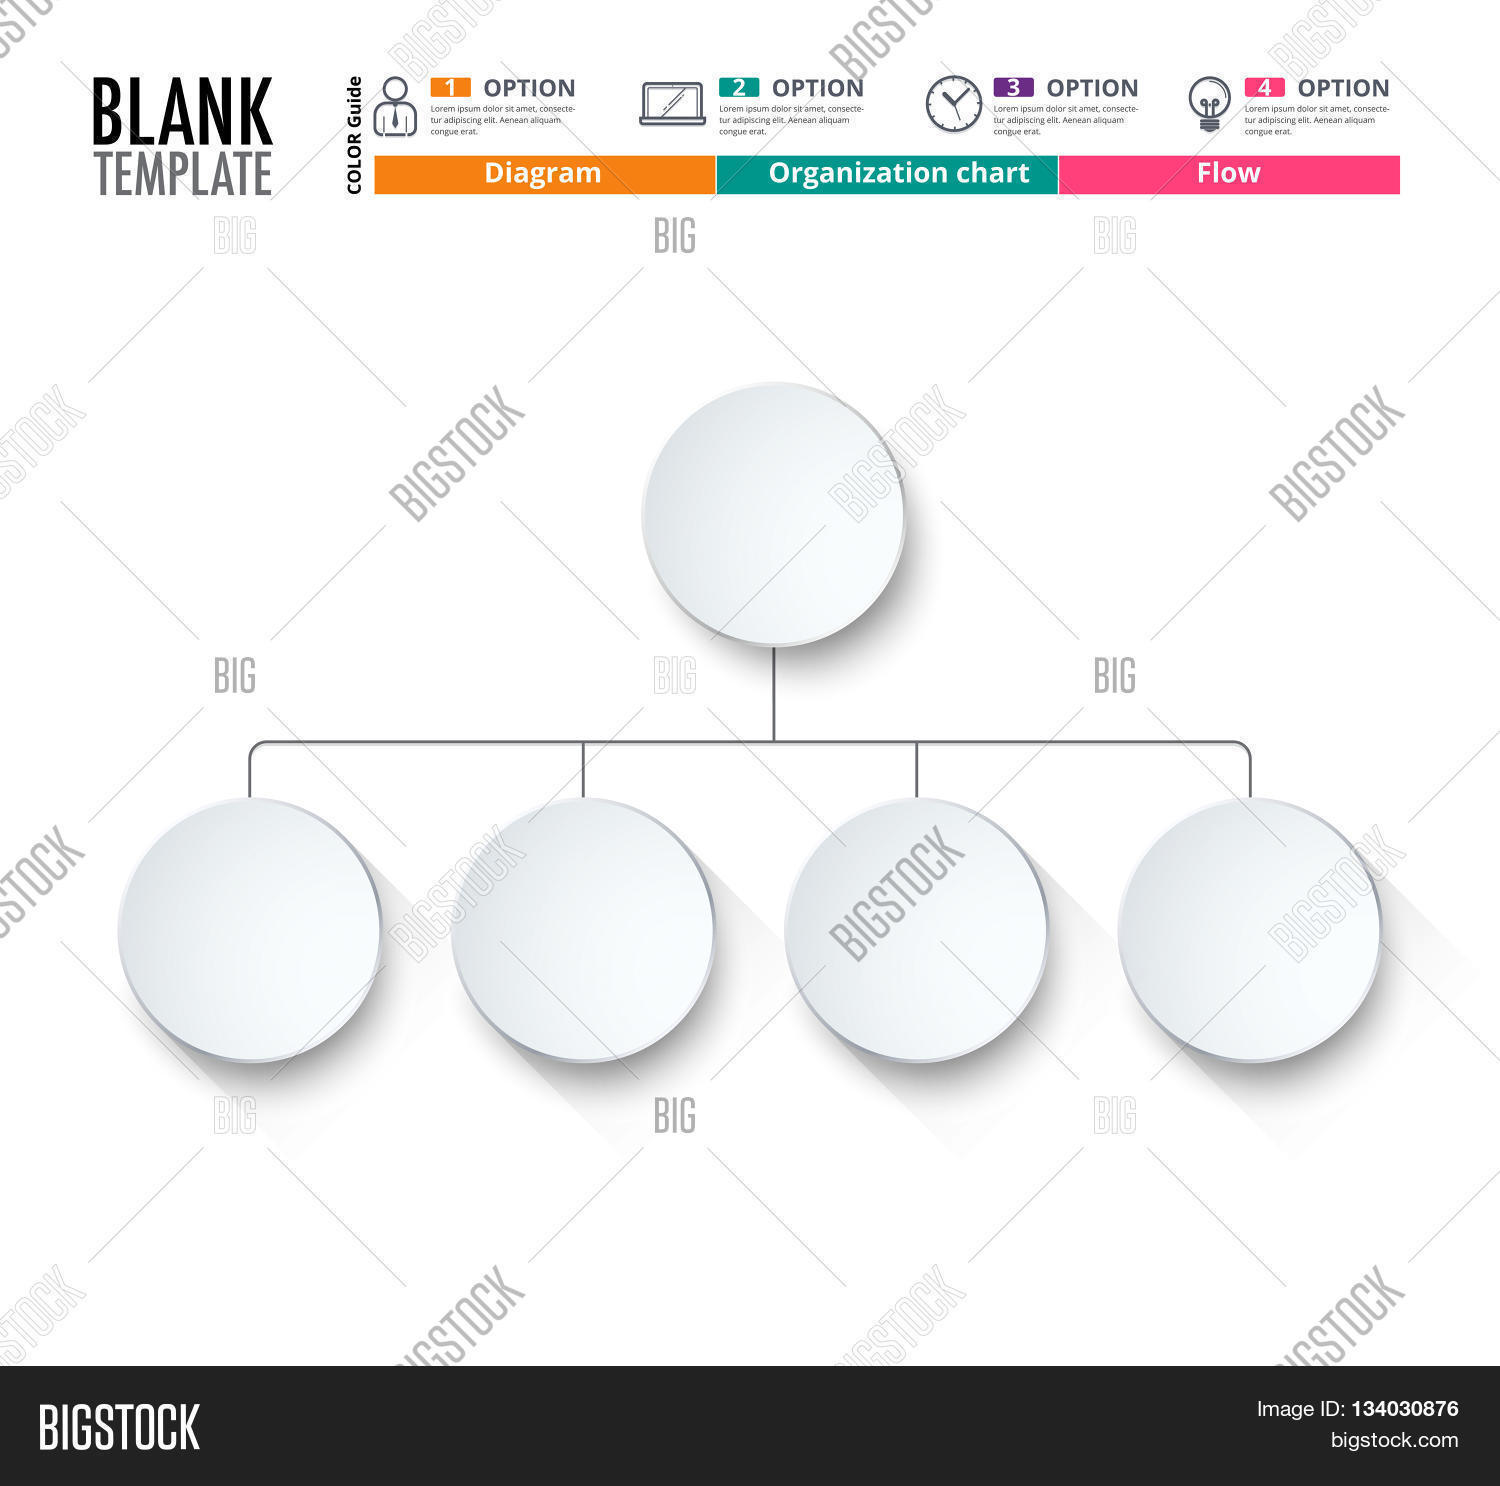 flow chart blank choice image chart example ideas 134030876 flow chart blankhtml blank spider diagram template blank spider diagram template - Empty Flow Chart Template